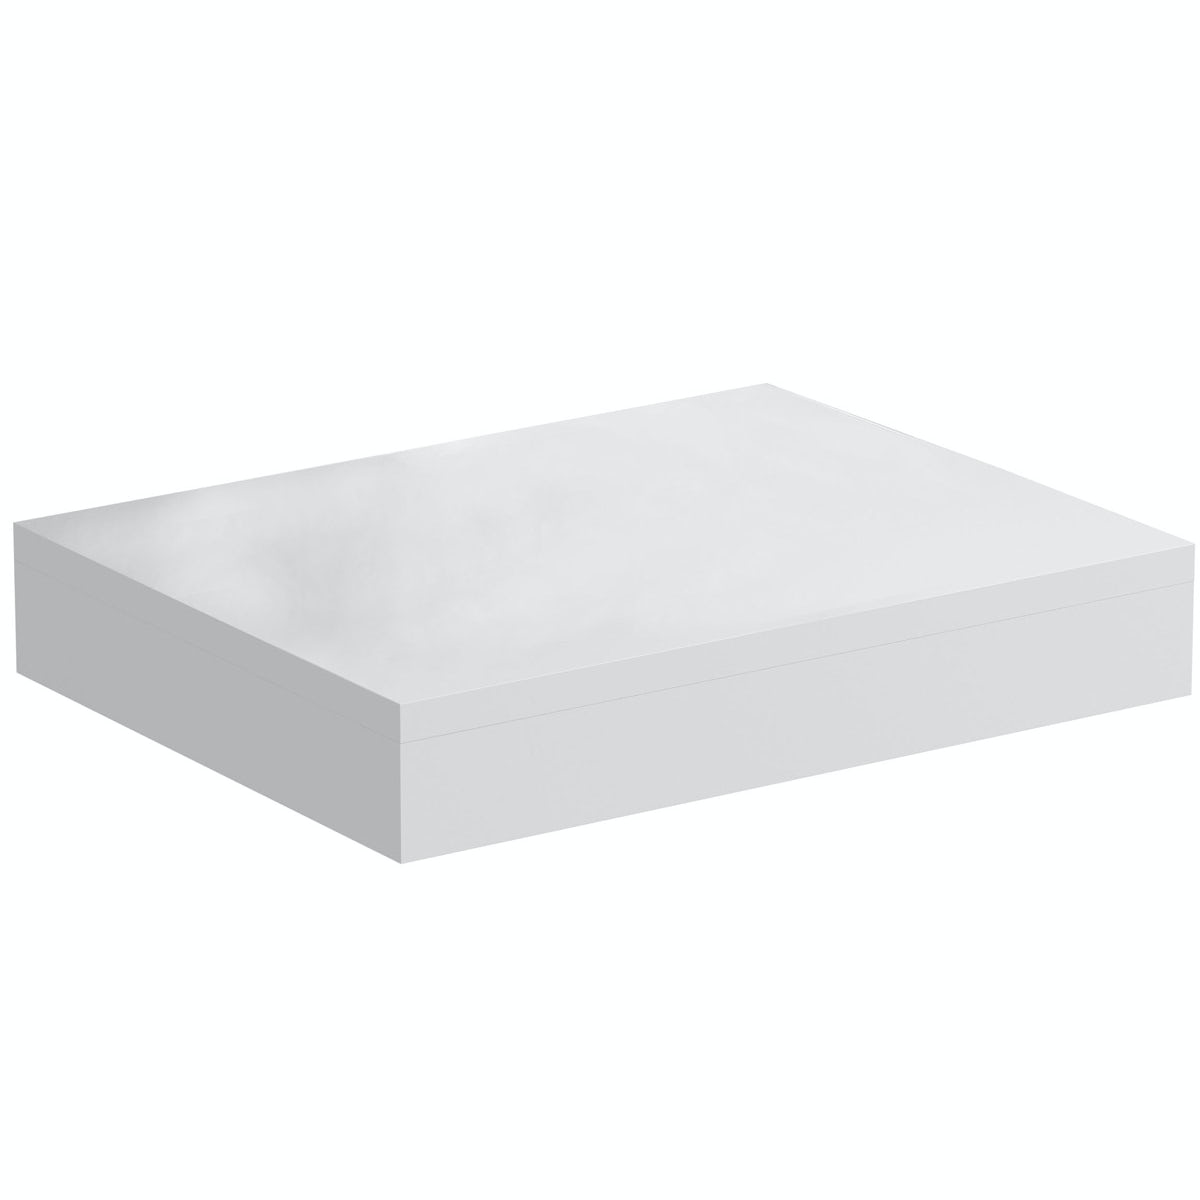 Mode Orion white wall hung countertop basin shelf